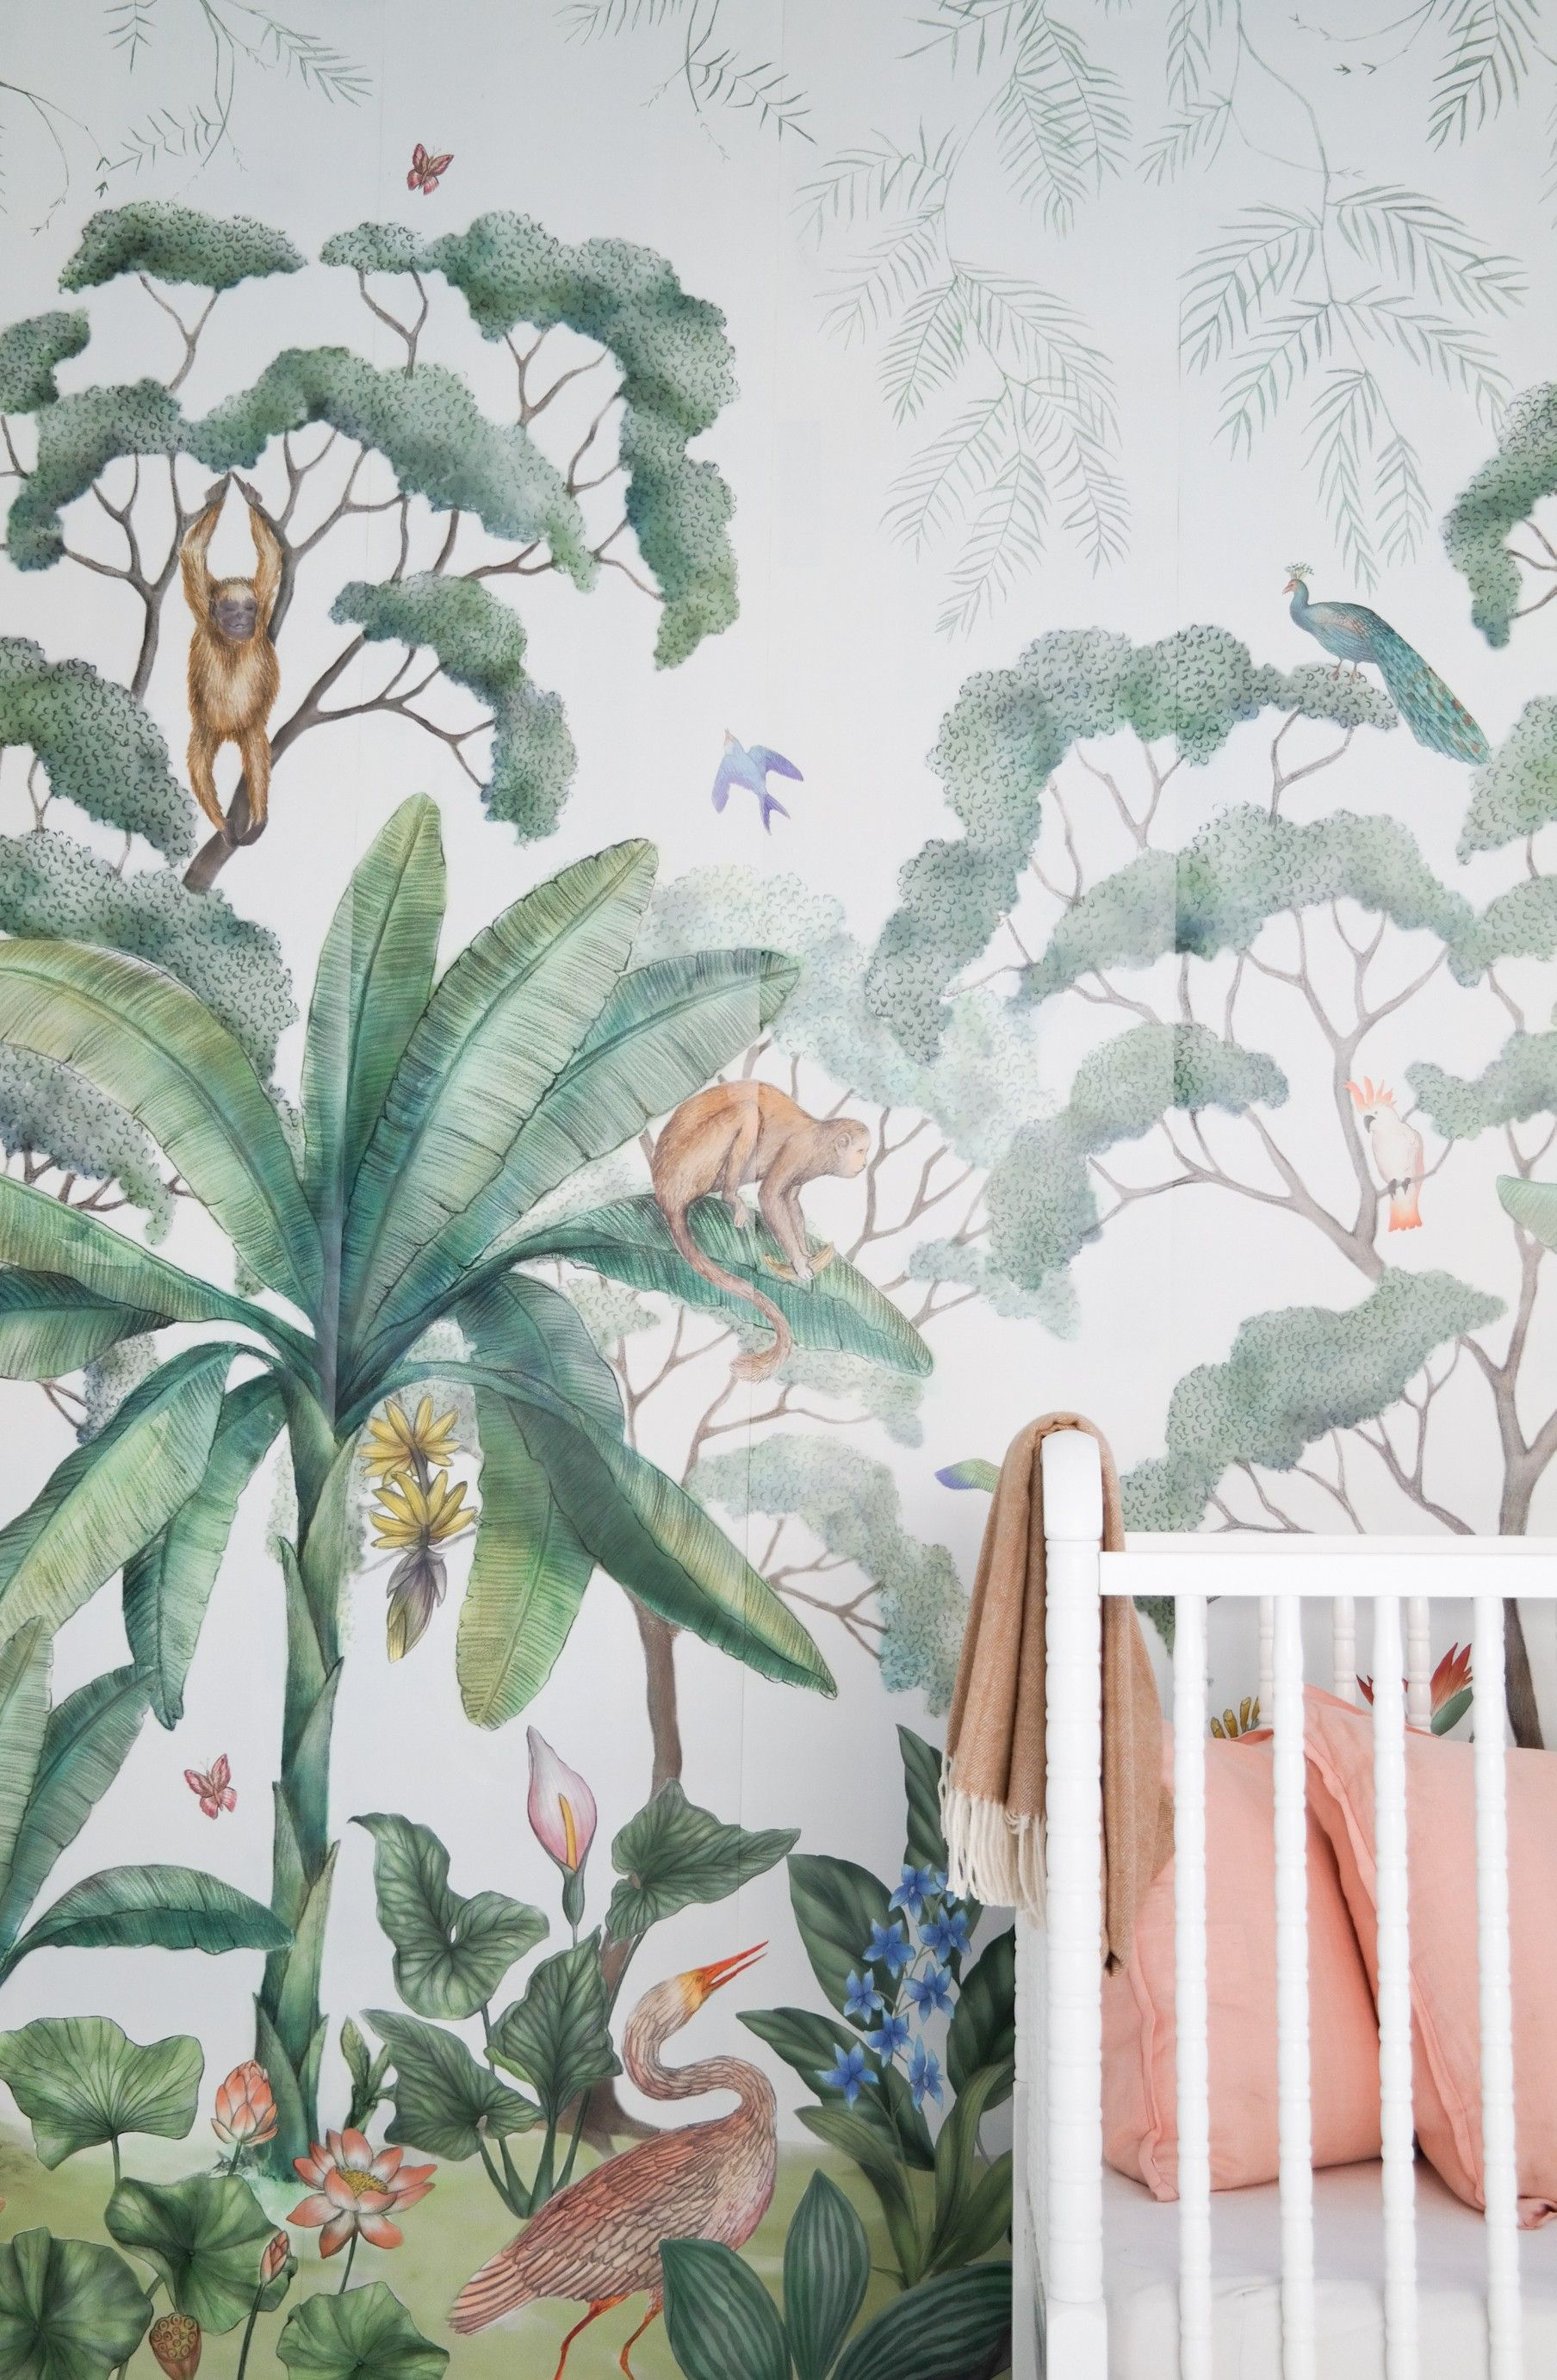 Jungle wallpaper mural wallpaper murals lush and for Child mural wallpaper